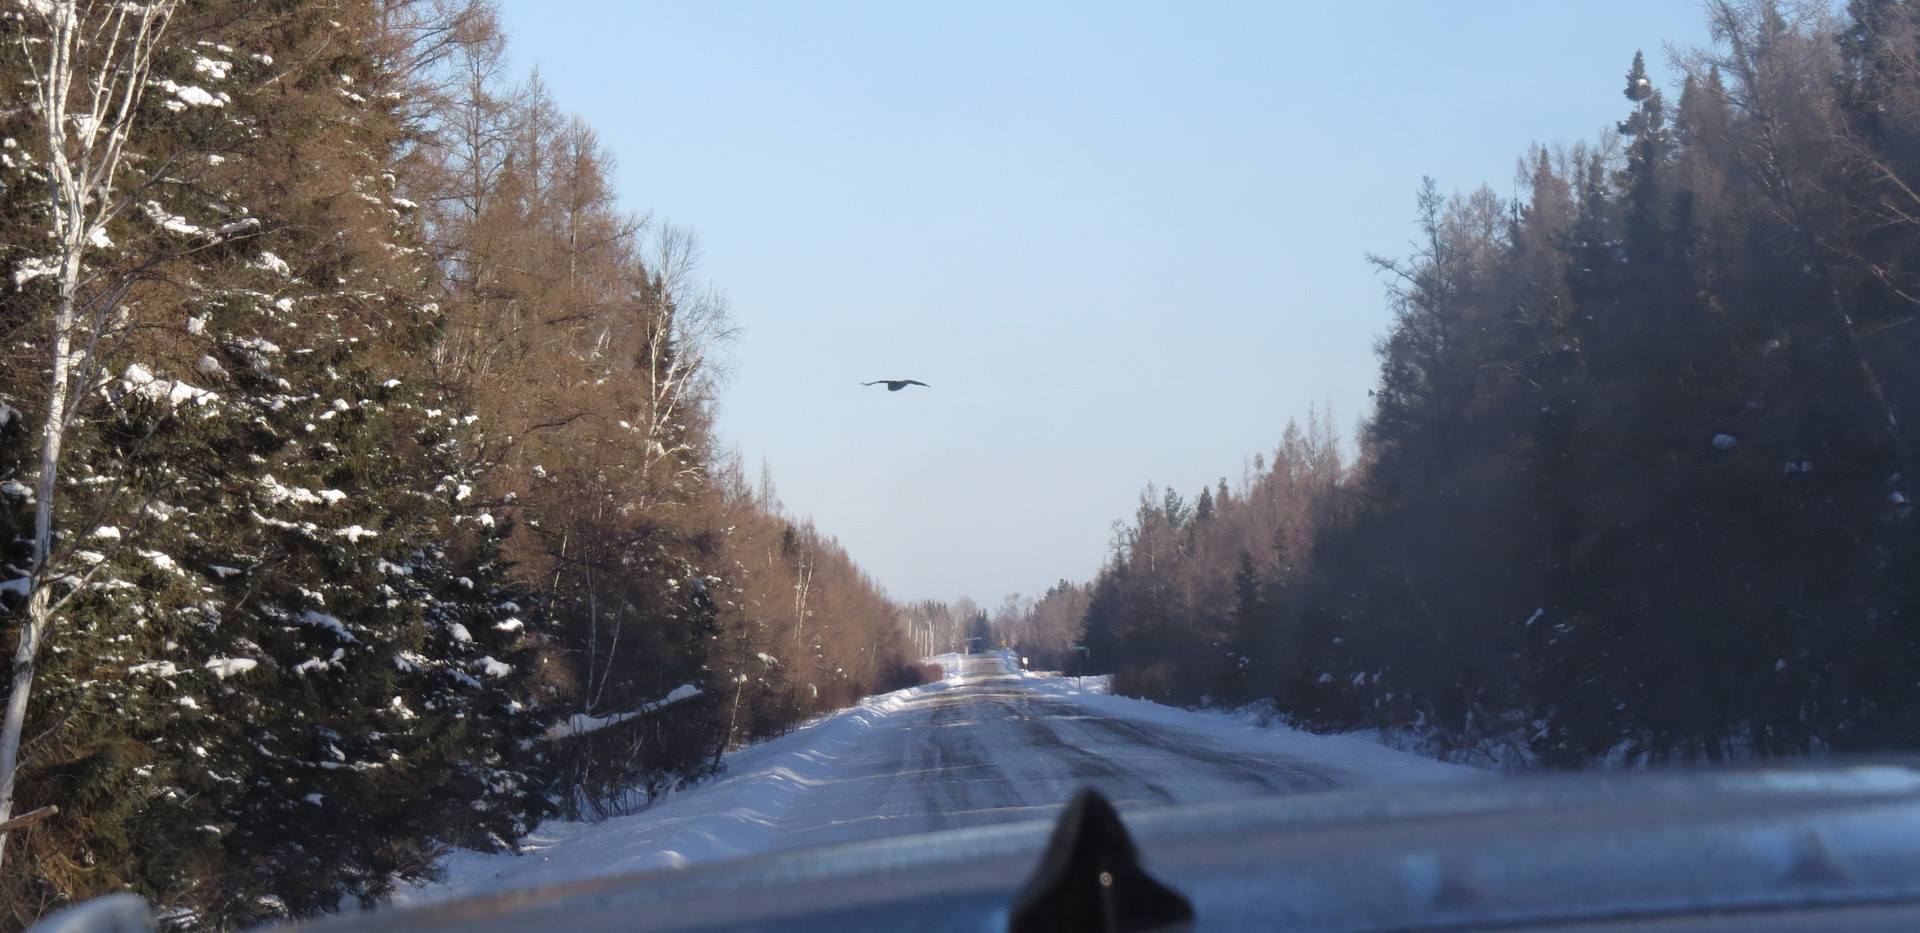 Great Gray Owl flying over the road